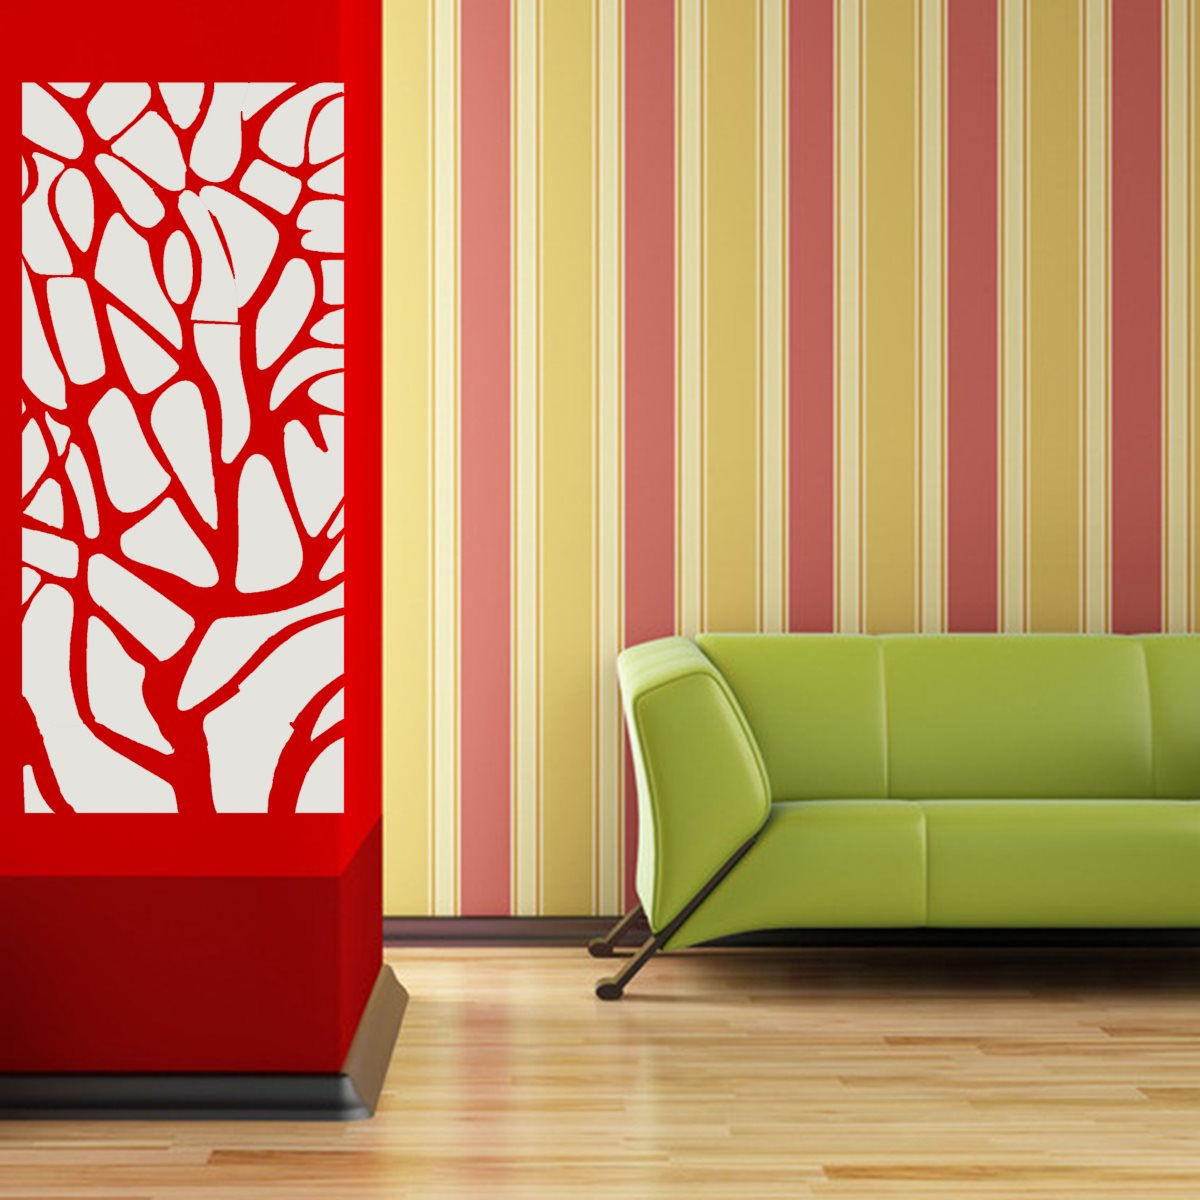 Sparkling Acrylic Wall Sticker Mirror Geometric Home Decor Art Diywallpaper Home Decoration Mirror Surface Wall Wall Stickers Fromhome Garden Acrylic Wall Sticker Mirror Geometric Home Decor Art Diy